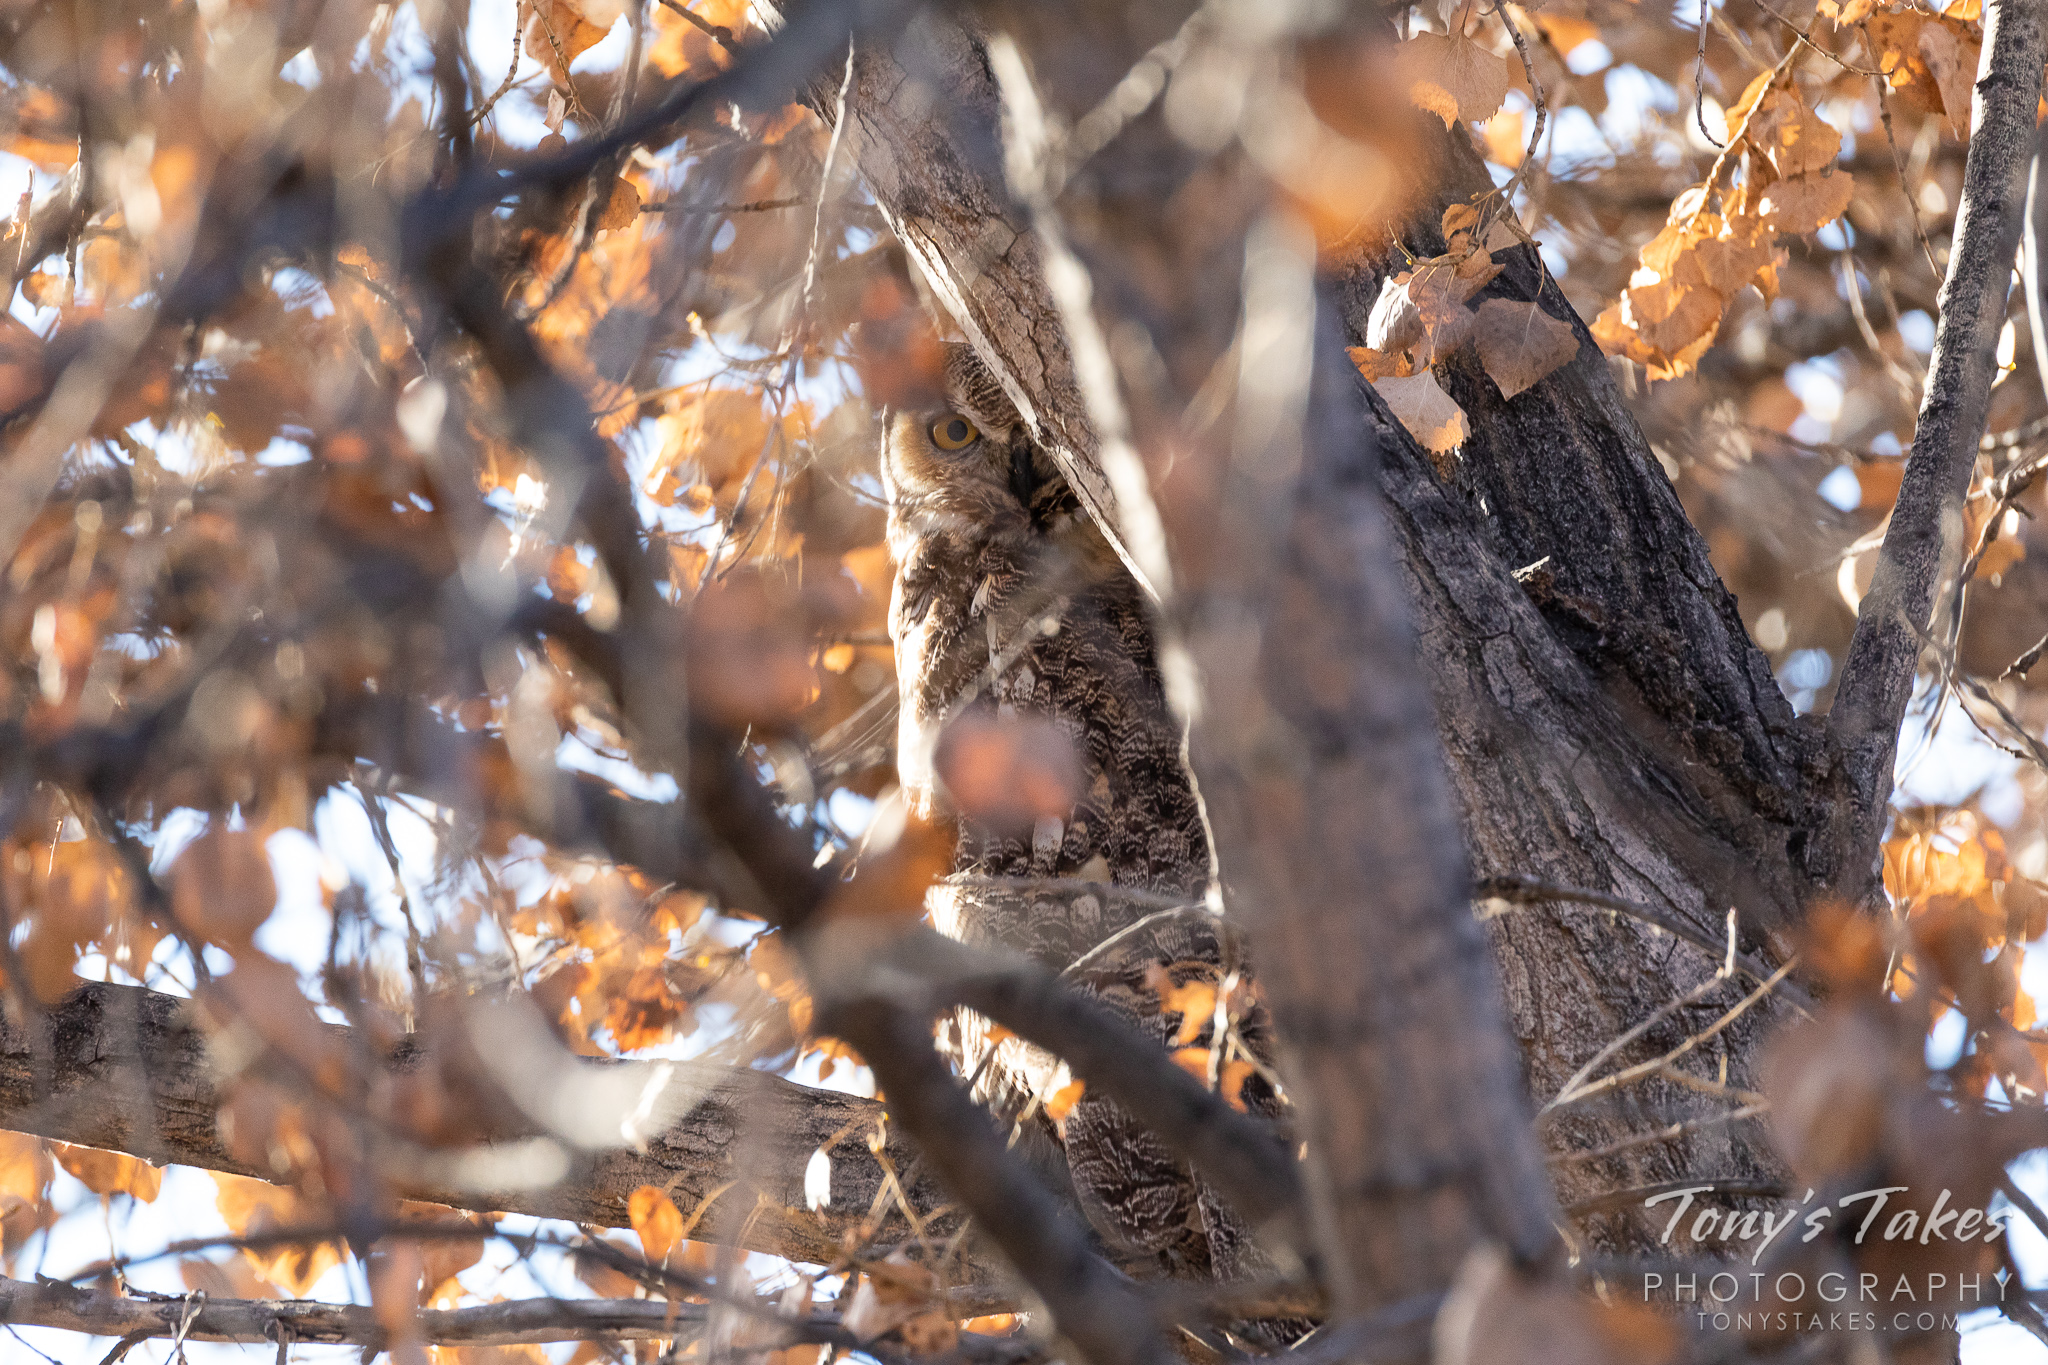 A great horned owl is well-concealed and keeping close watch. (© Tony's Takes)